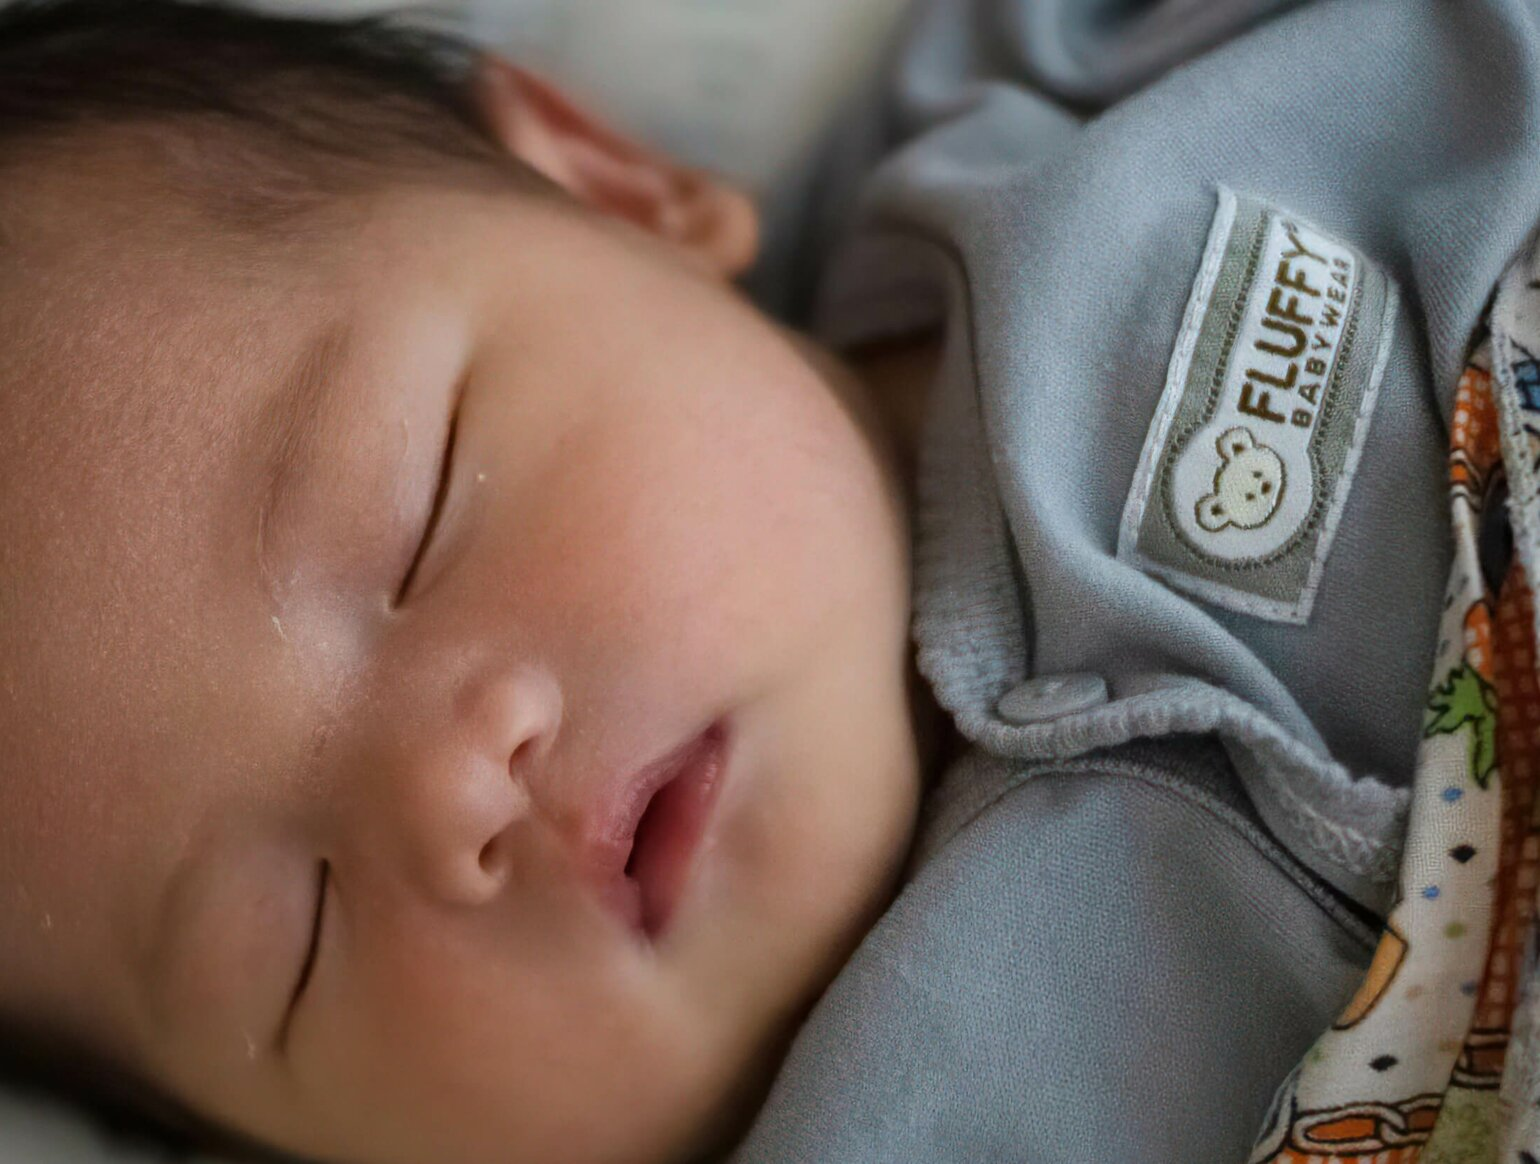 iCandy Recommends - Sleep & Postnatal Products Spotlight